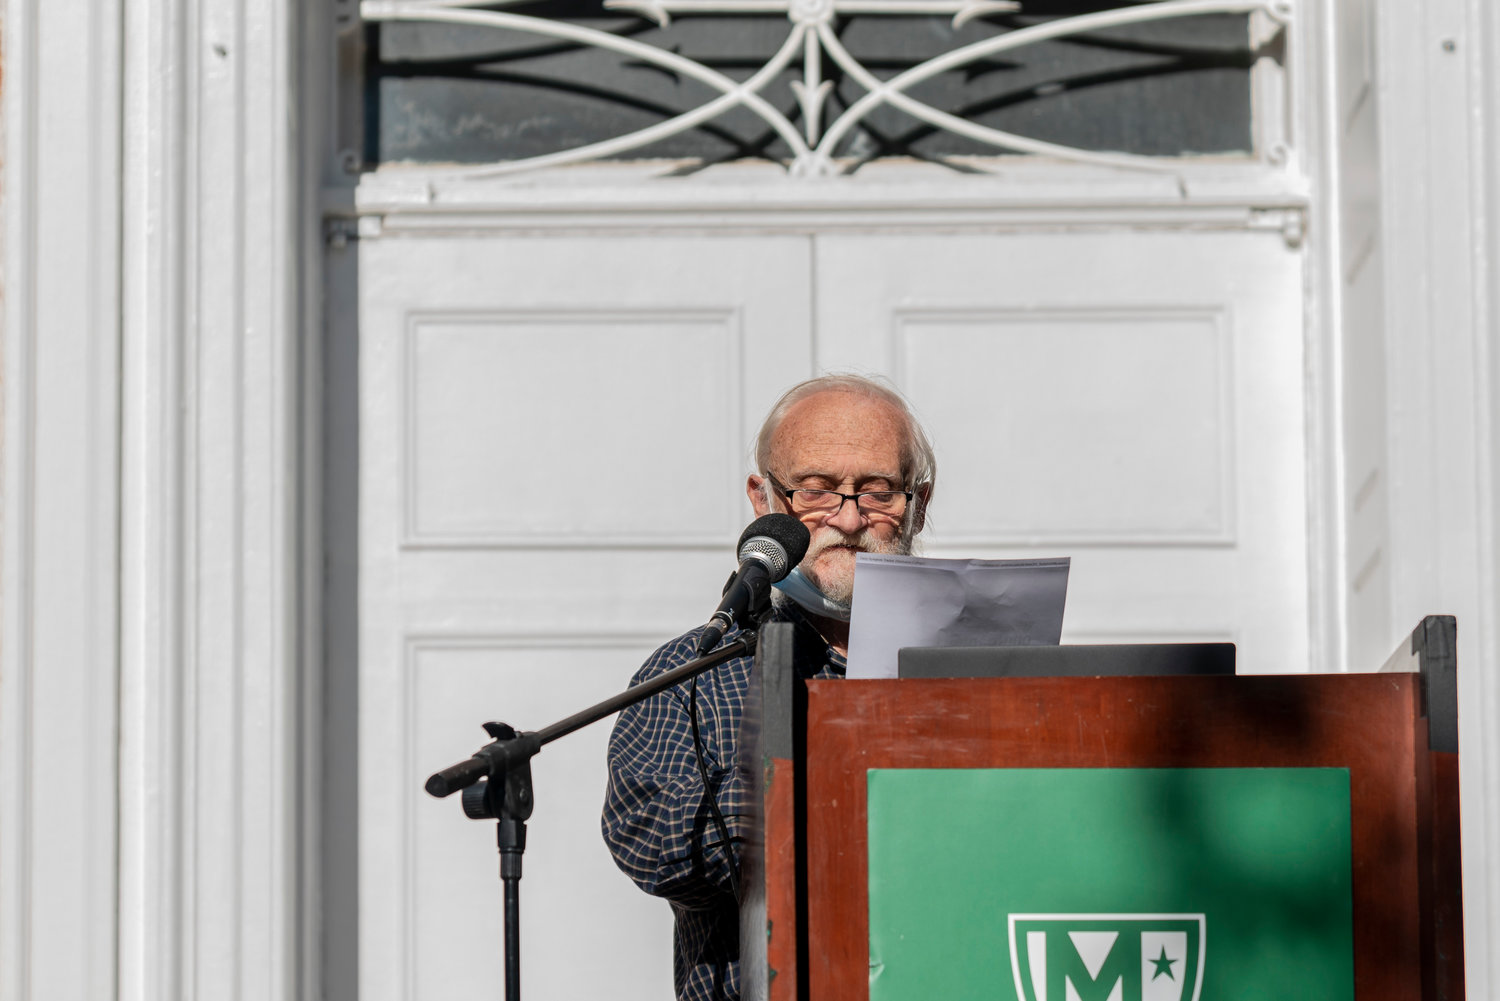 Jim White's speech at Manhattan College's 'shoe strike' Sept. 22 was a bit unorthodox. He favored a 'call-and-response' rhetoric for his remarks, as opposed to a typical one-sided speech.